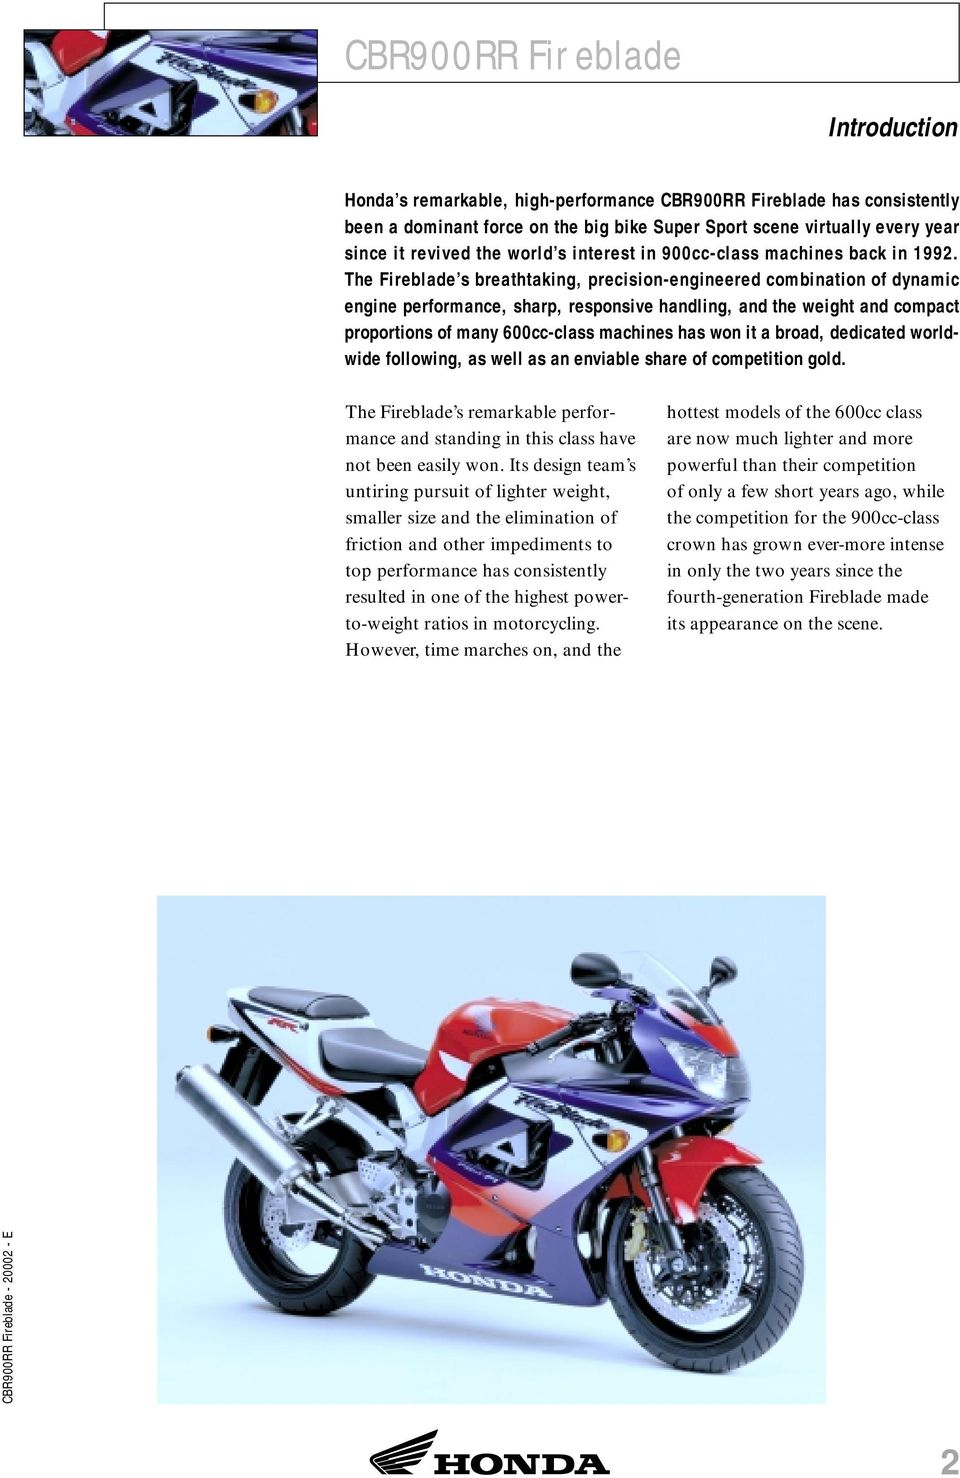 The Fireblade s breathtaking, precision-engineered combination of dynamic engine performance, sharp, responsive handling, and the weight and compact proportions of many 600cc-class machines has won